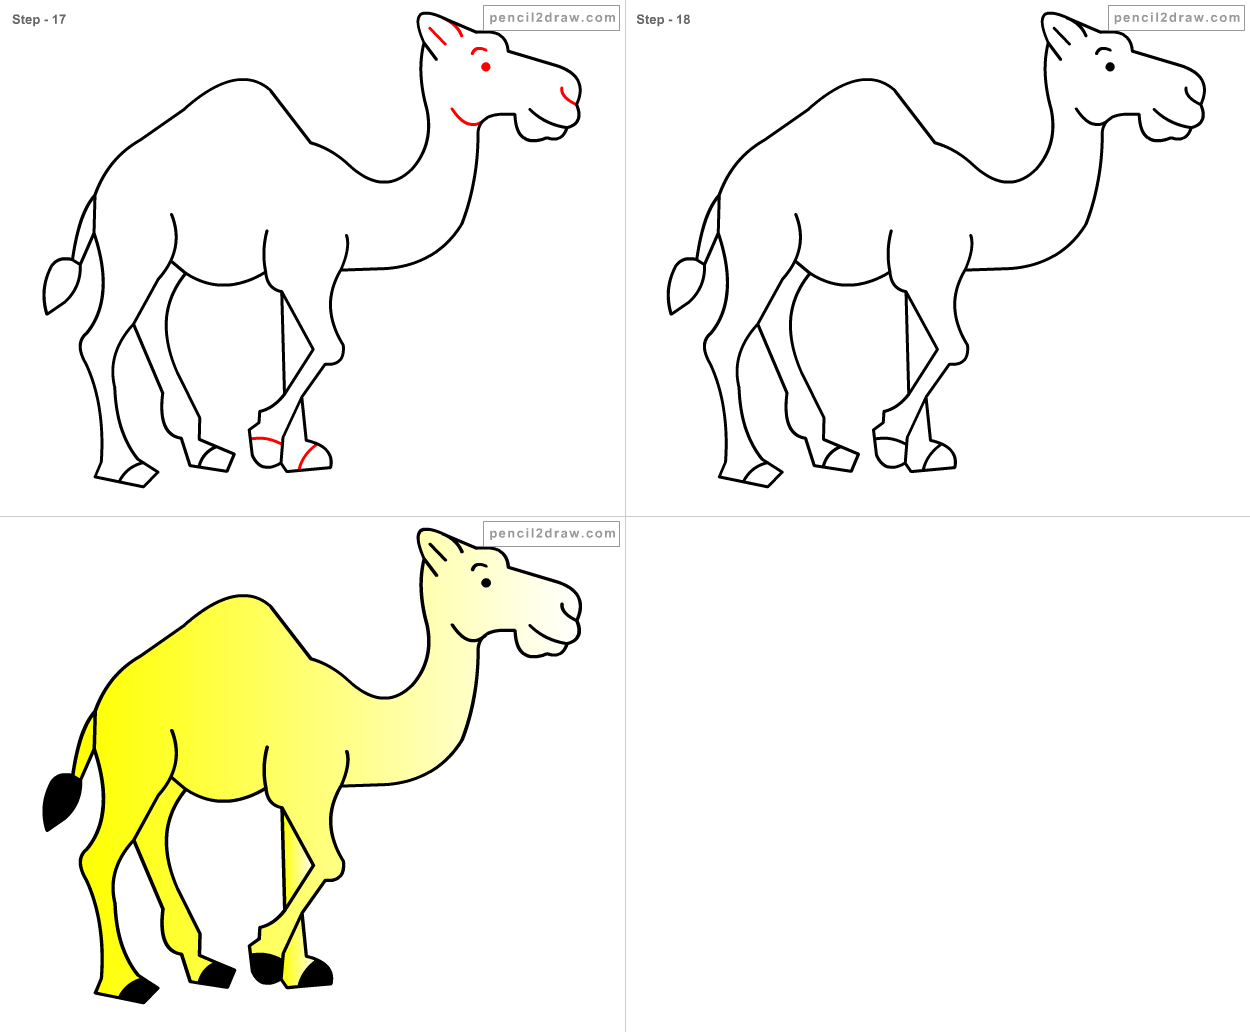 Uncategorized How To Draw A Camel Step By Step fpencil how to draw cartoon camel step by fact the camels long legs help keeping its body farther from ground which can heat up 70 a